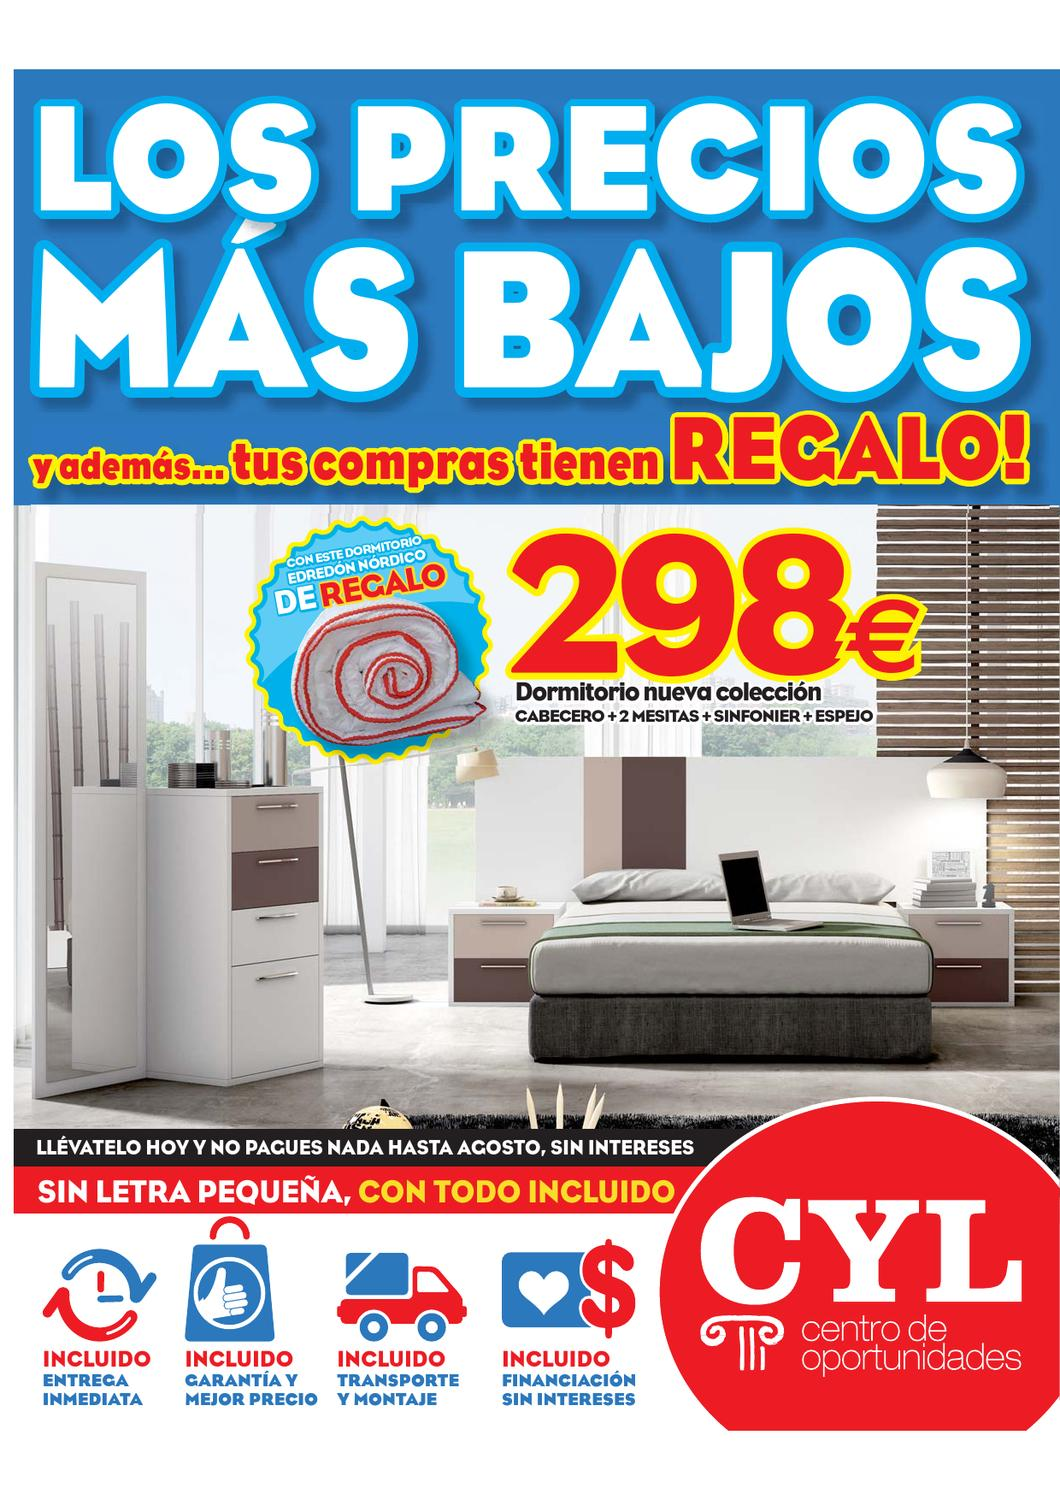 Oportunidades cyl by issuu for Muebles cyl vigo